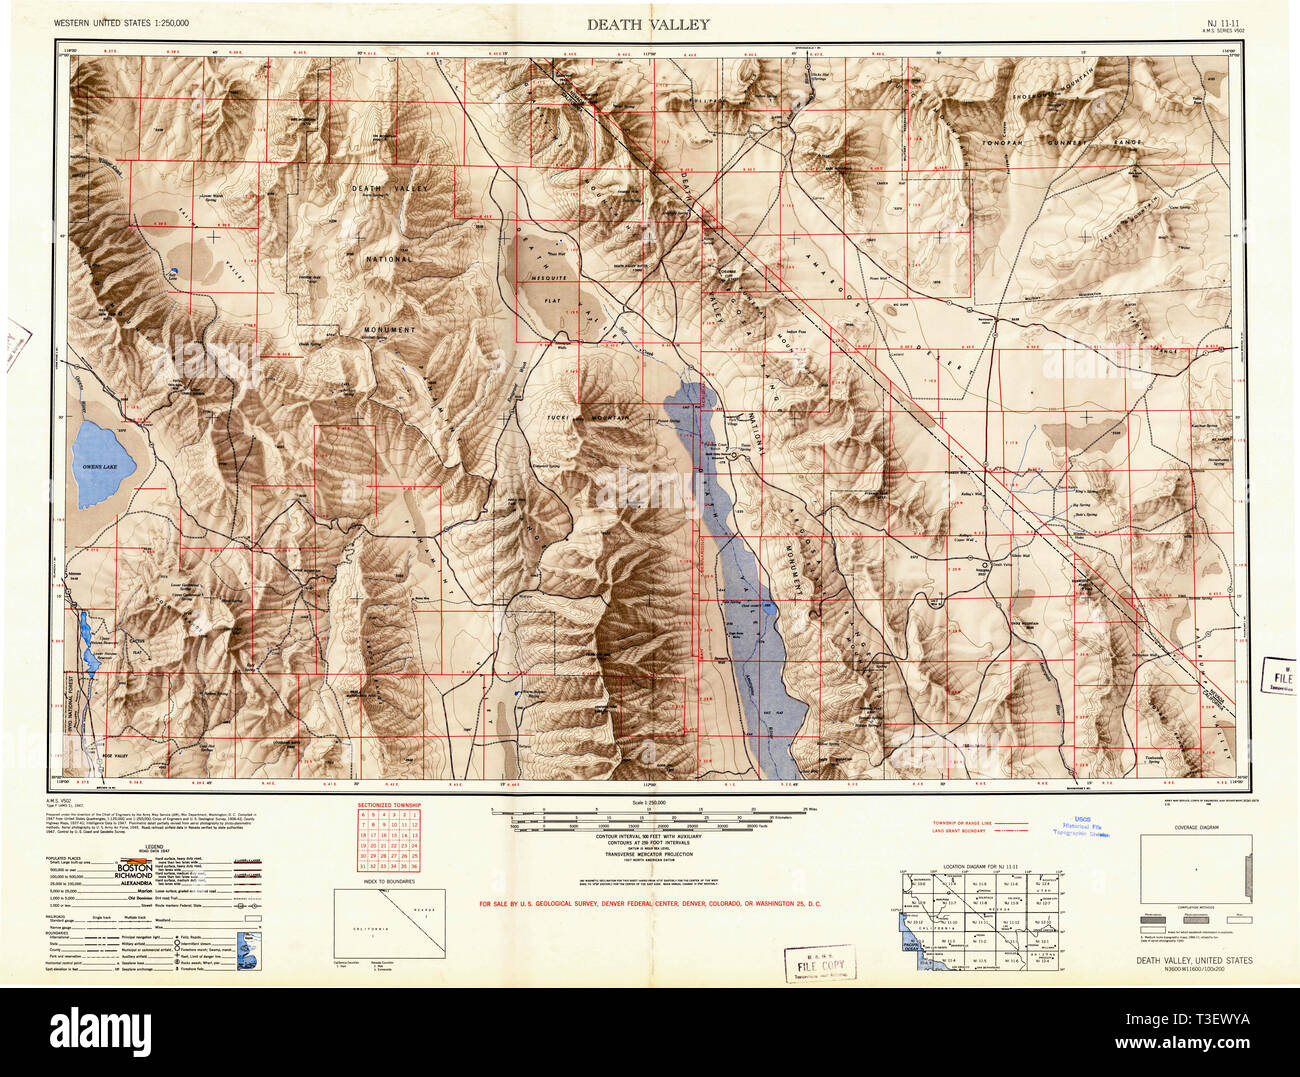 topographic map of death valley Usgs Topo Map California Ca Death Valley 299750 1948 250000